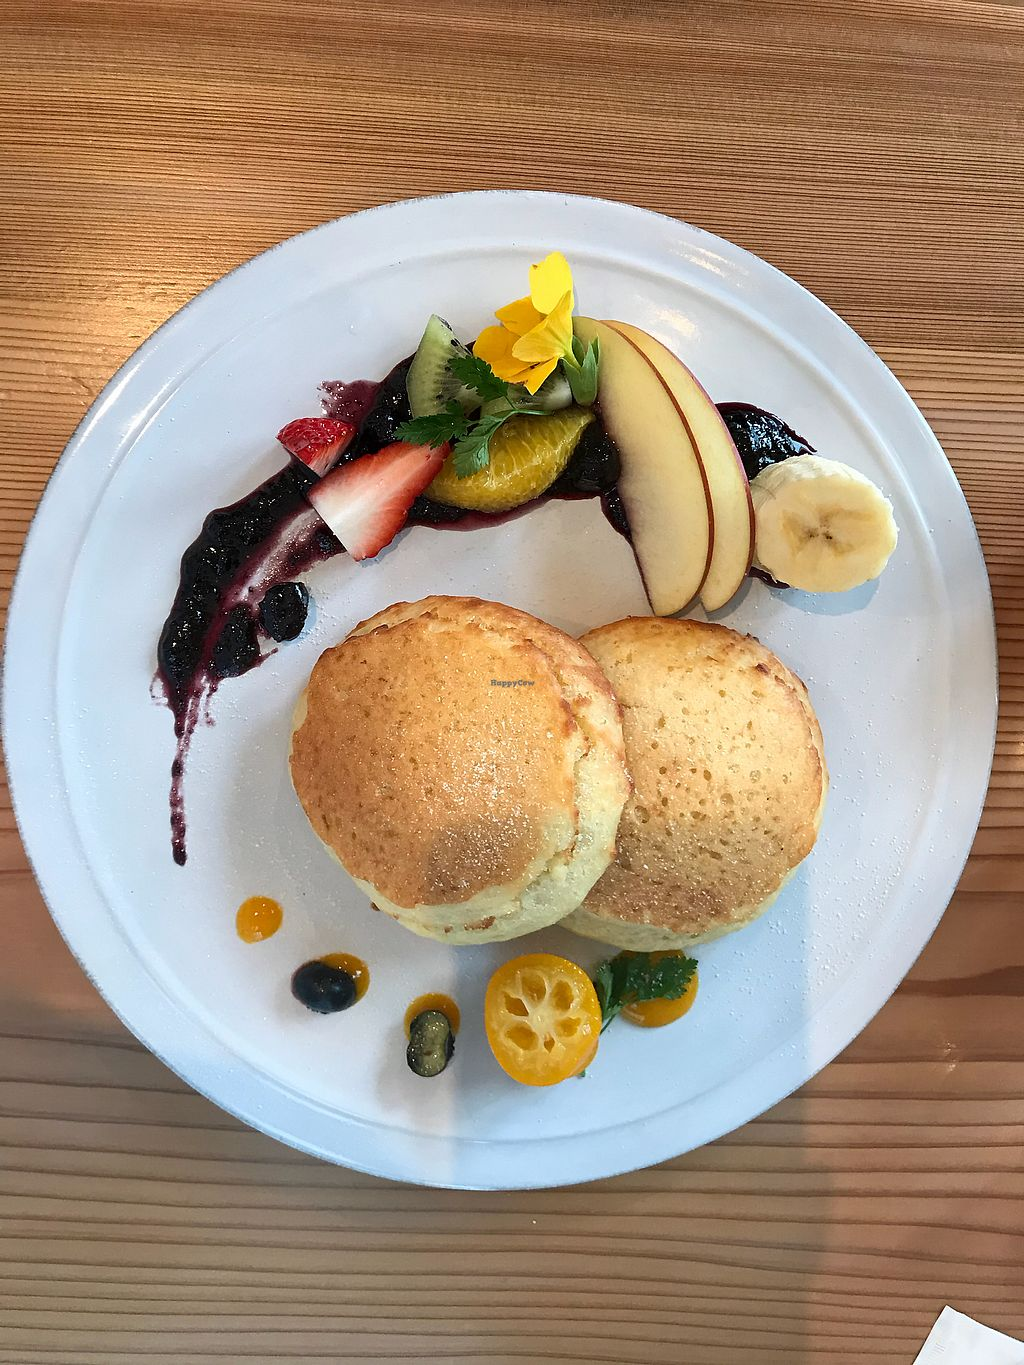 """Photo of Ain Soph.Ginza  by <a href=""""/members/profile/Sairrr"""">Sairrr</a> <br/>Pancakes (toppings come on a seperate plate)  <br/> March 20, 2018  - <a href='/contact/abuse/image/23681/373212'>Report</a>"""